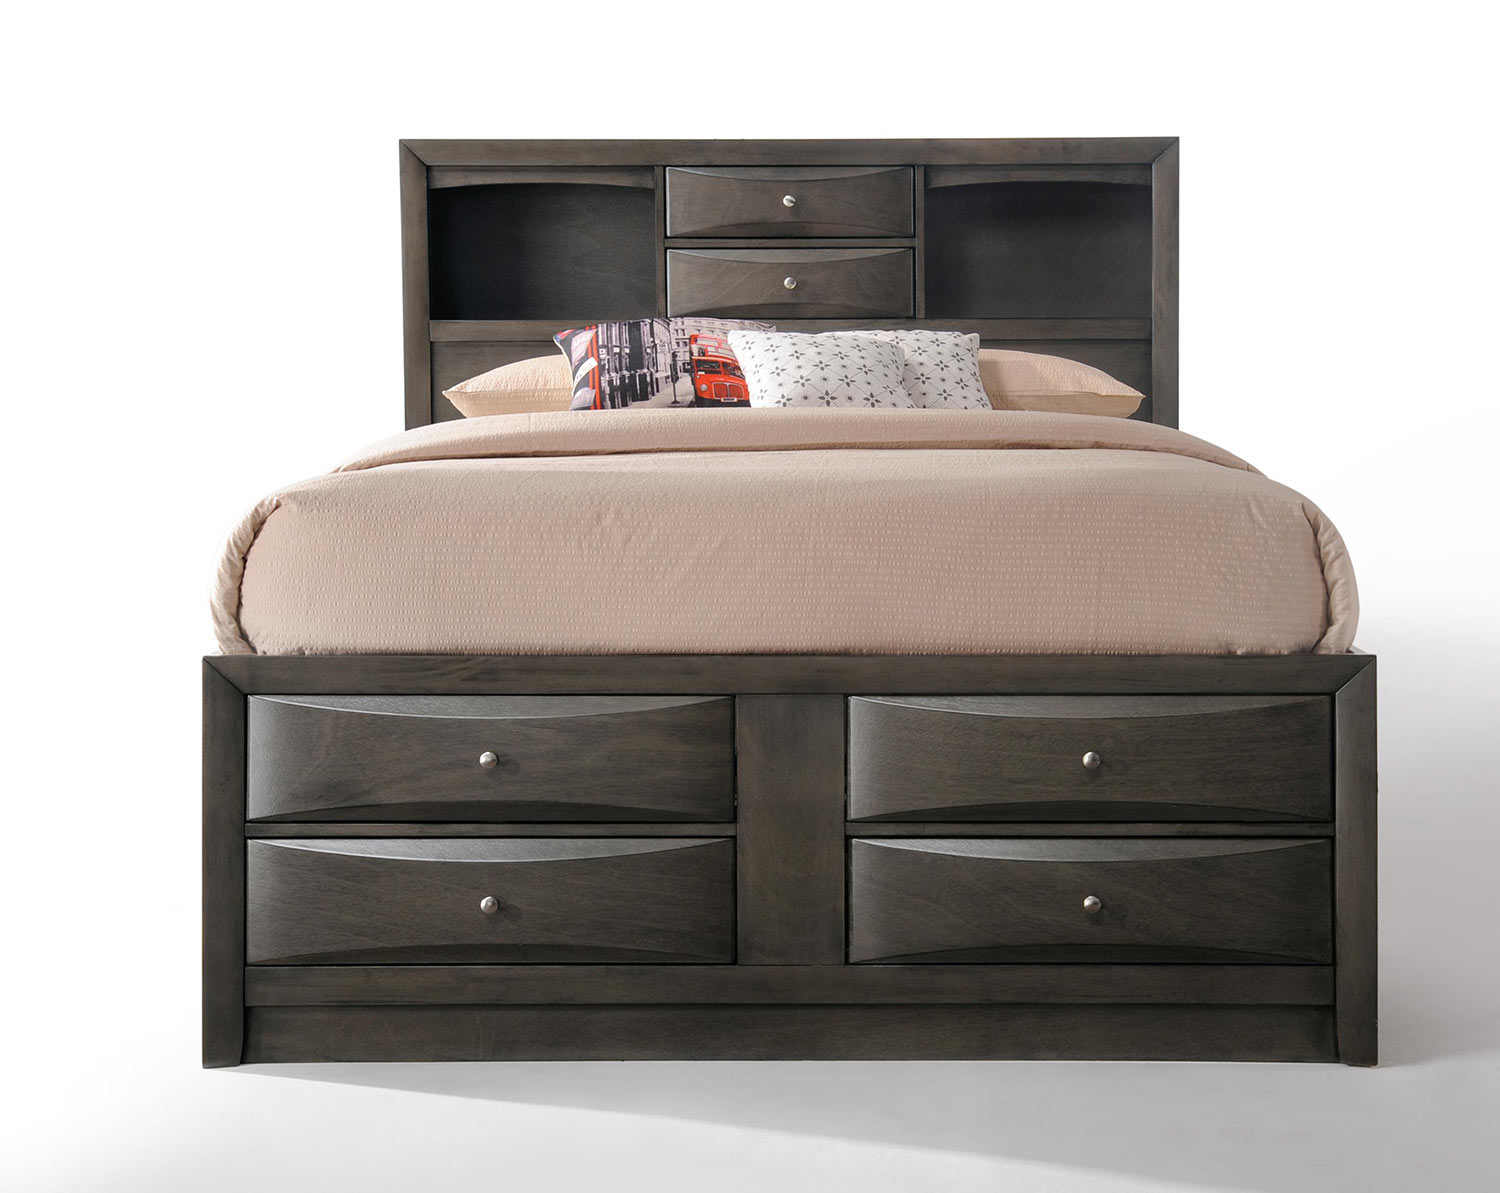 Acme Ireland Bed with Storage - Gray Oak